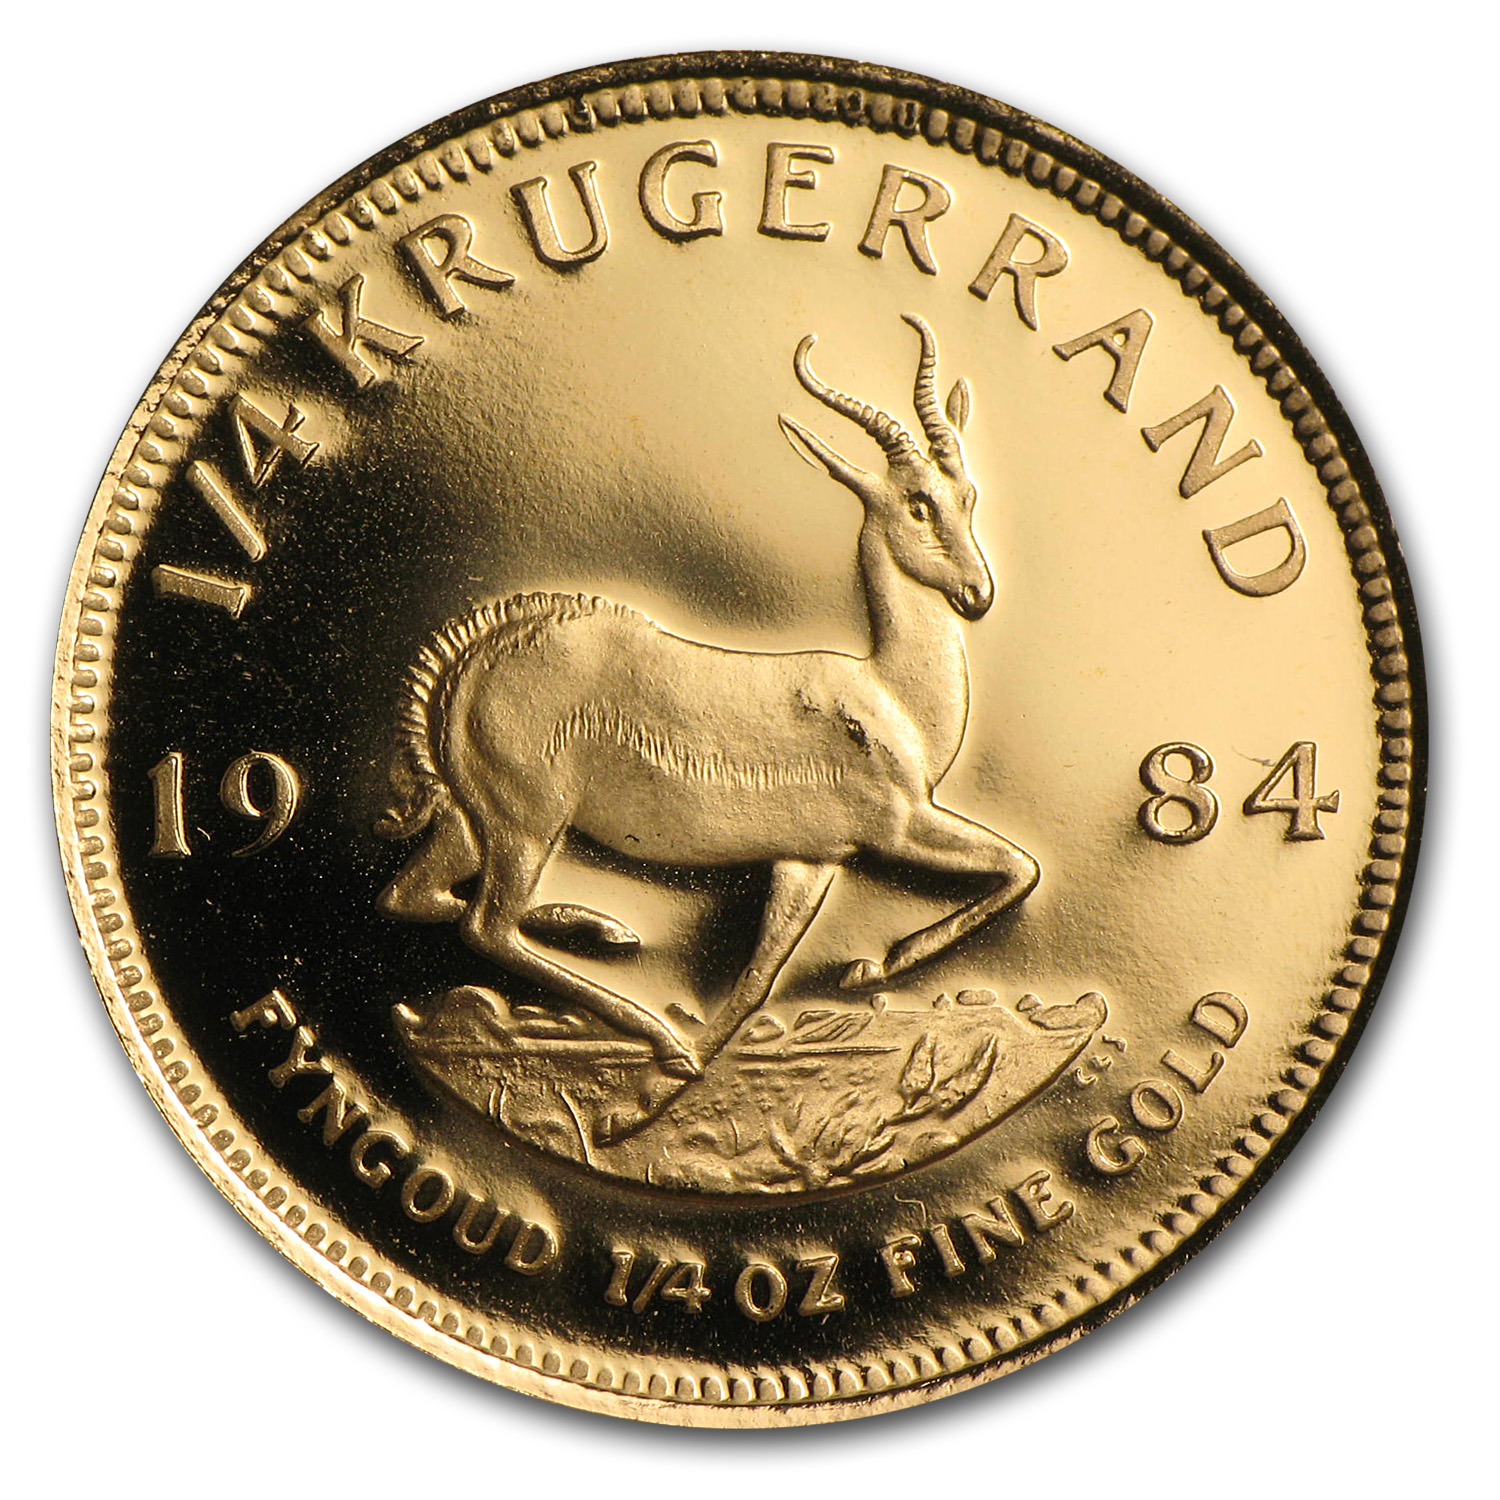 1984 1/4 oz Gold South African Krugerrand (Proof)